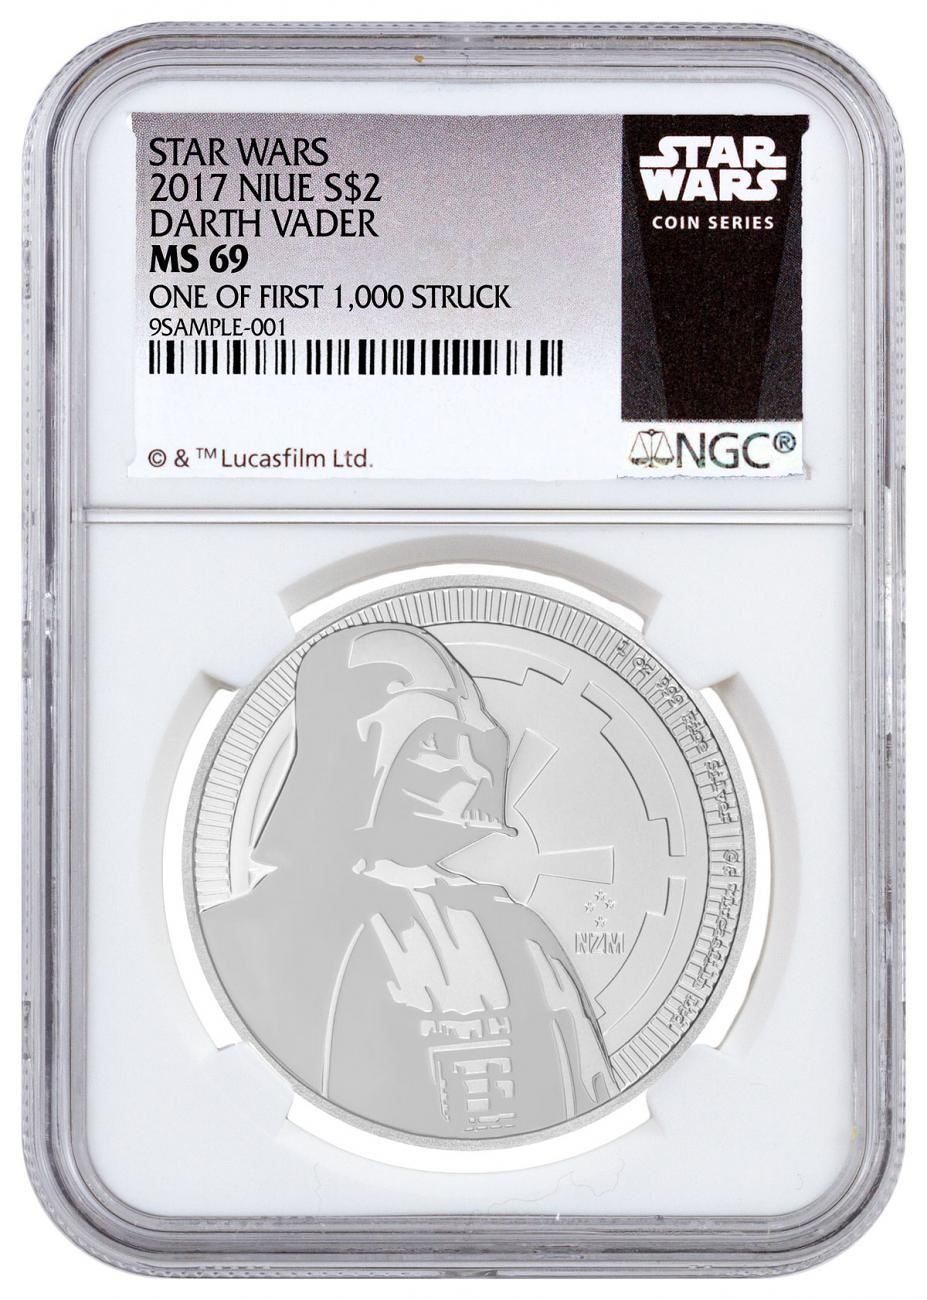 2017 Niue Star Wars Classic - Darth Vader 1 oz Silver $2 Coin NGC MS69 One of First 1,000 Struck Exclusive Star Wars Label